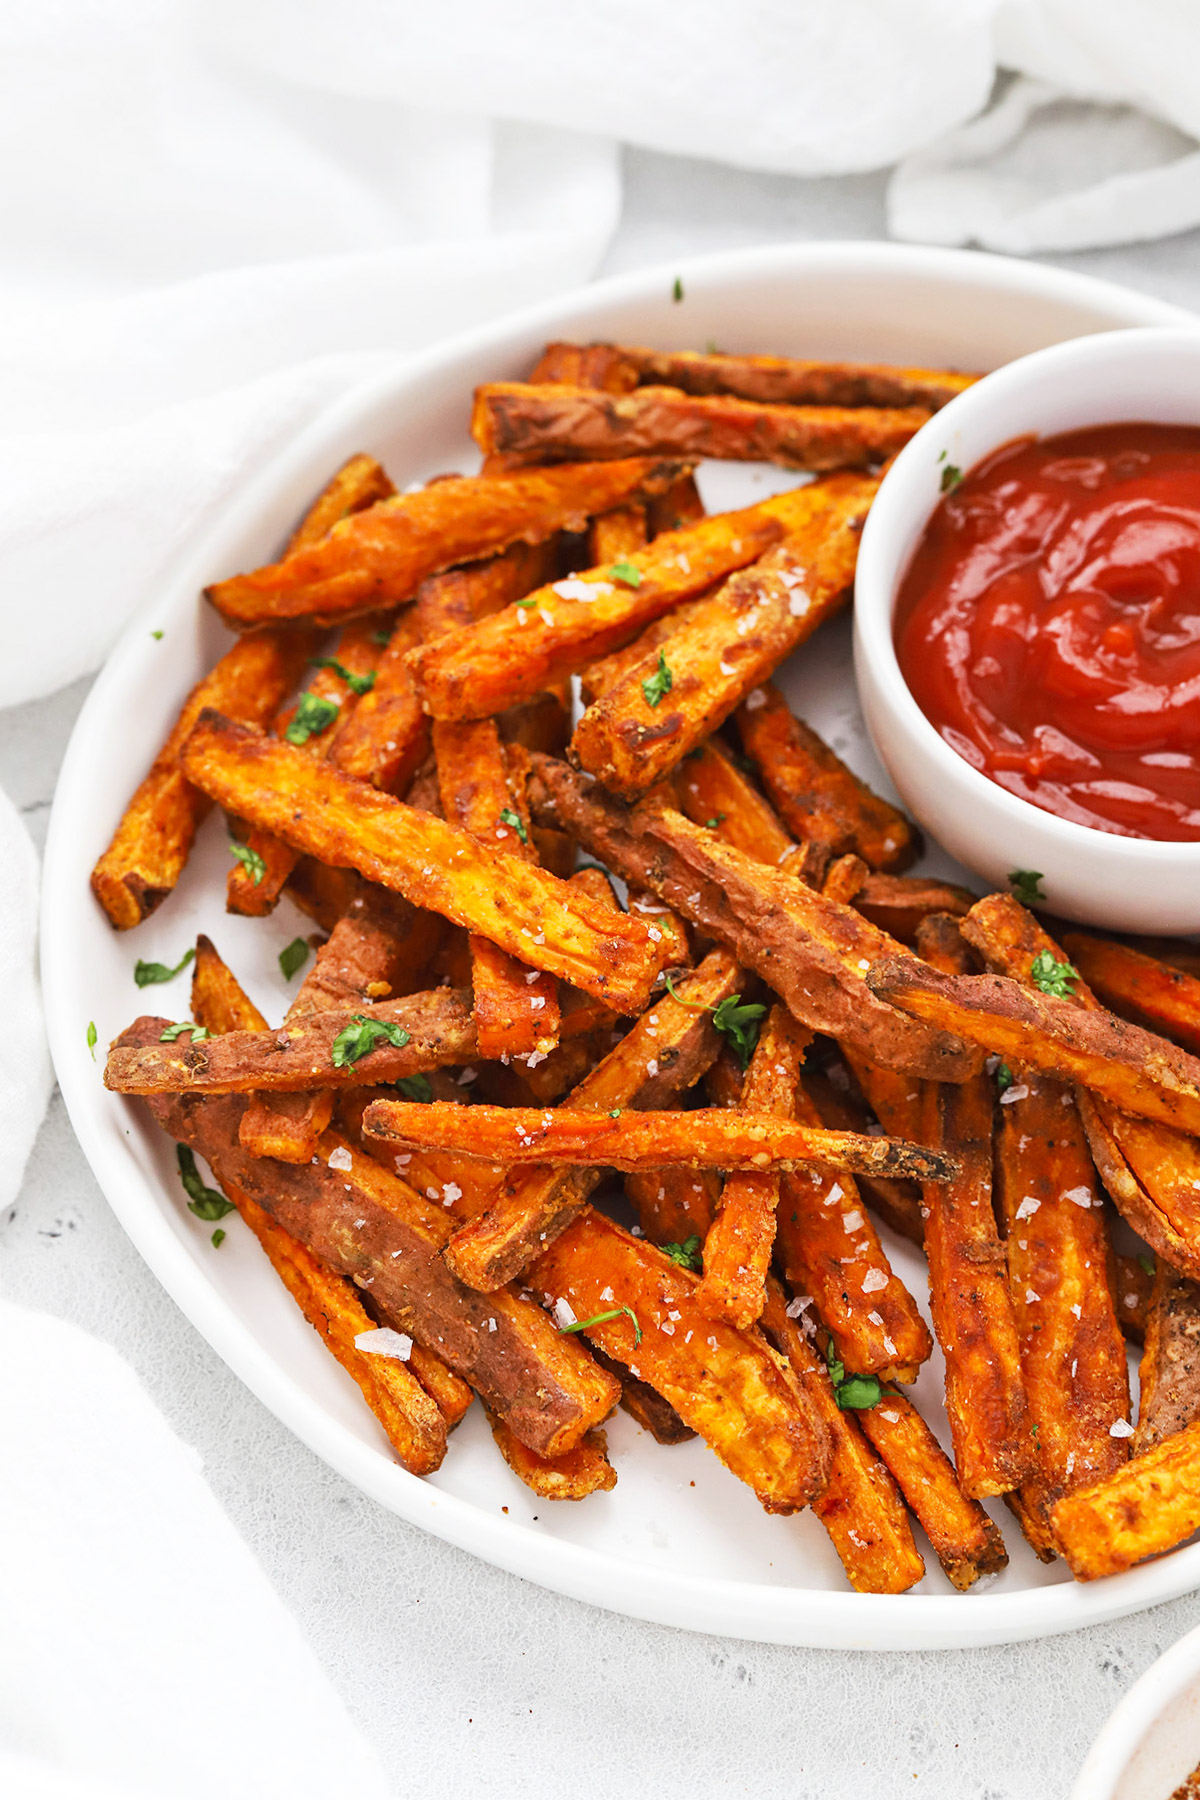 Front view of crispy baked sweet potato fries with ketchup on the side